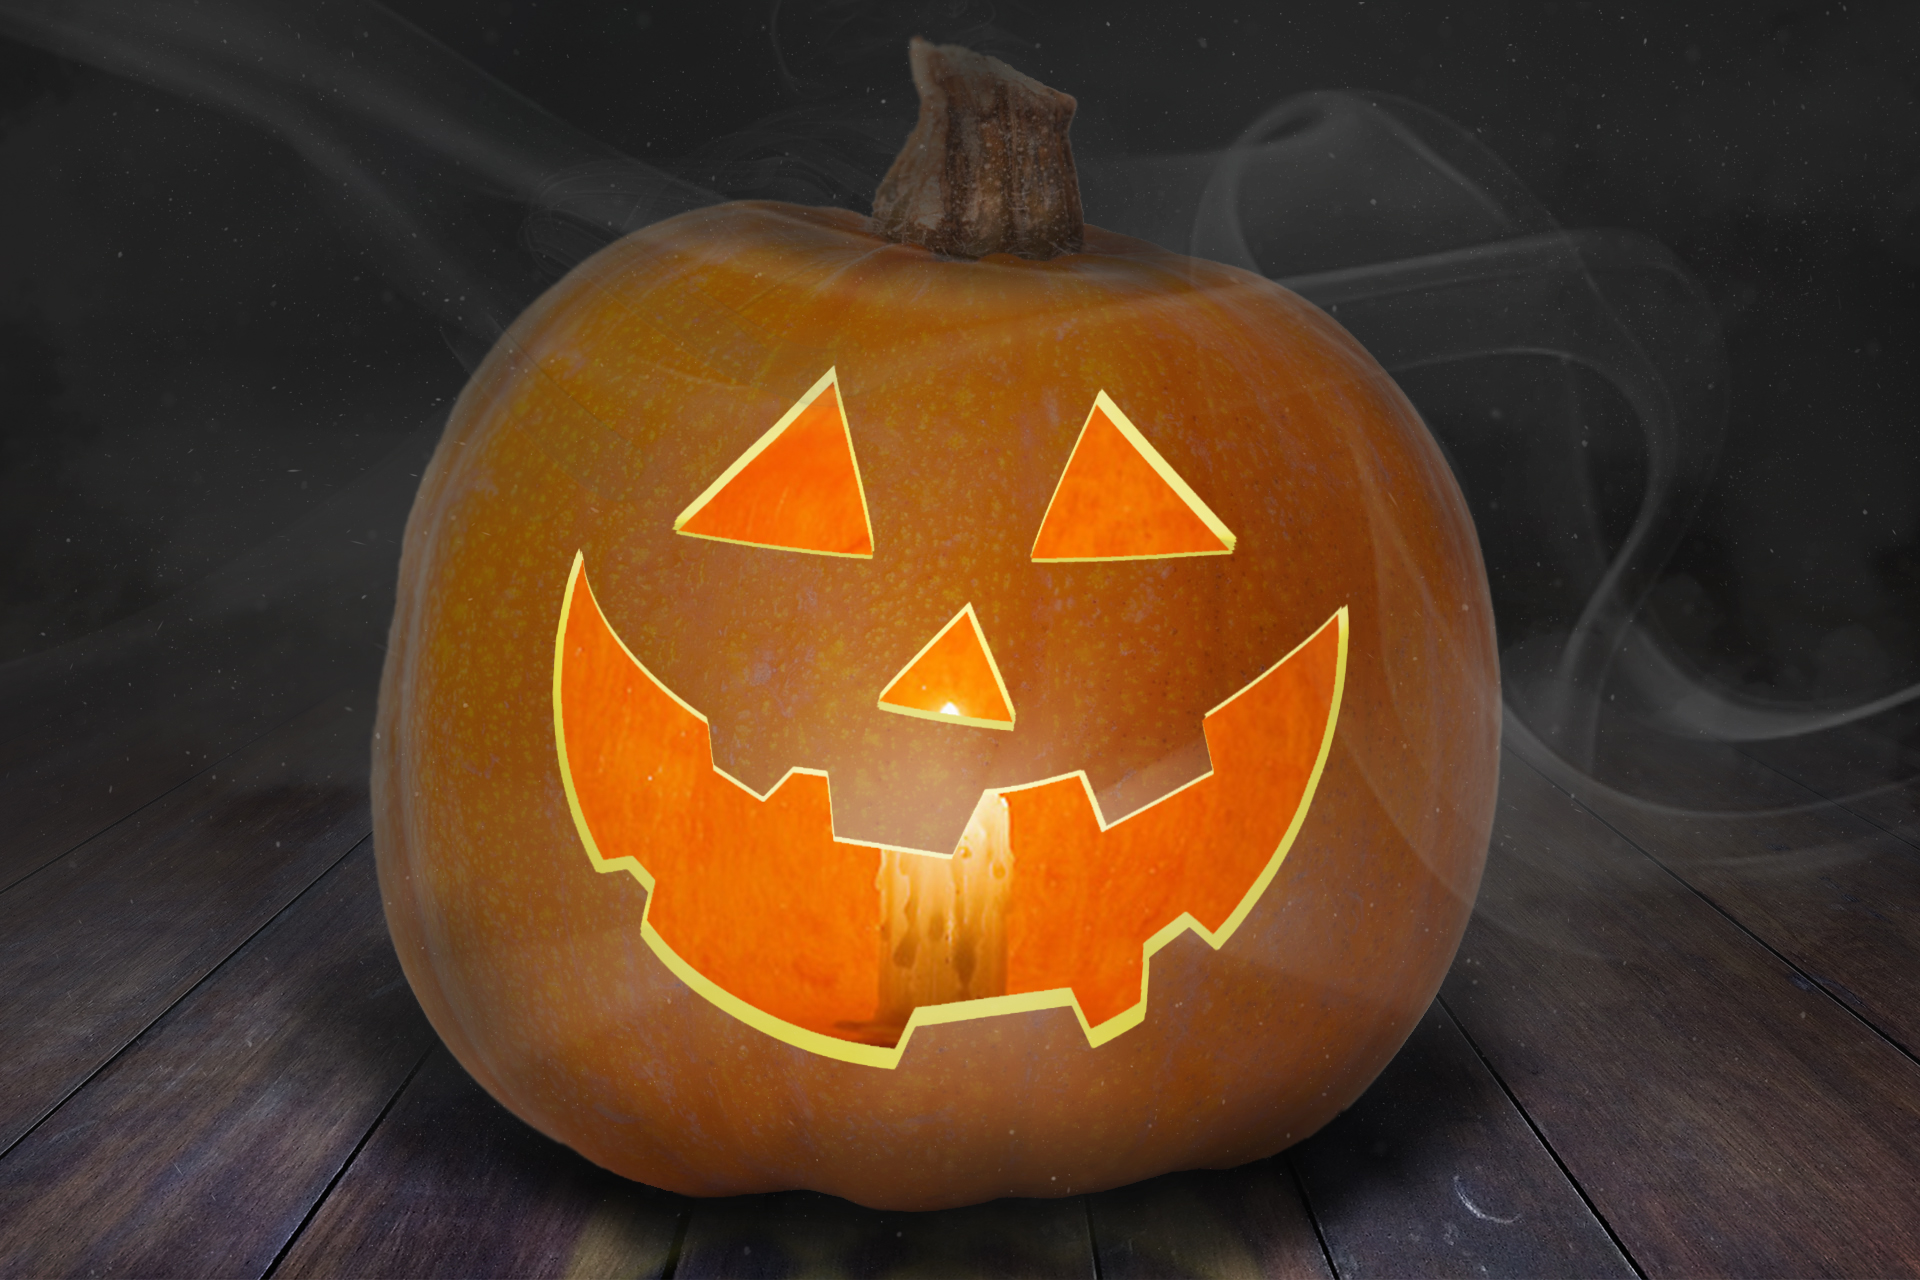 Free Pumpkin Jack-o'-lantern PSD Mock-Up